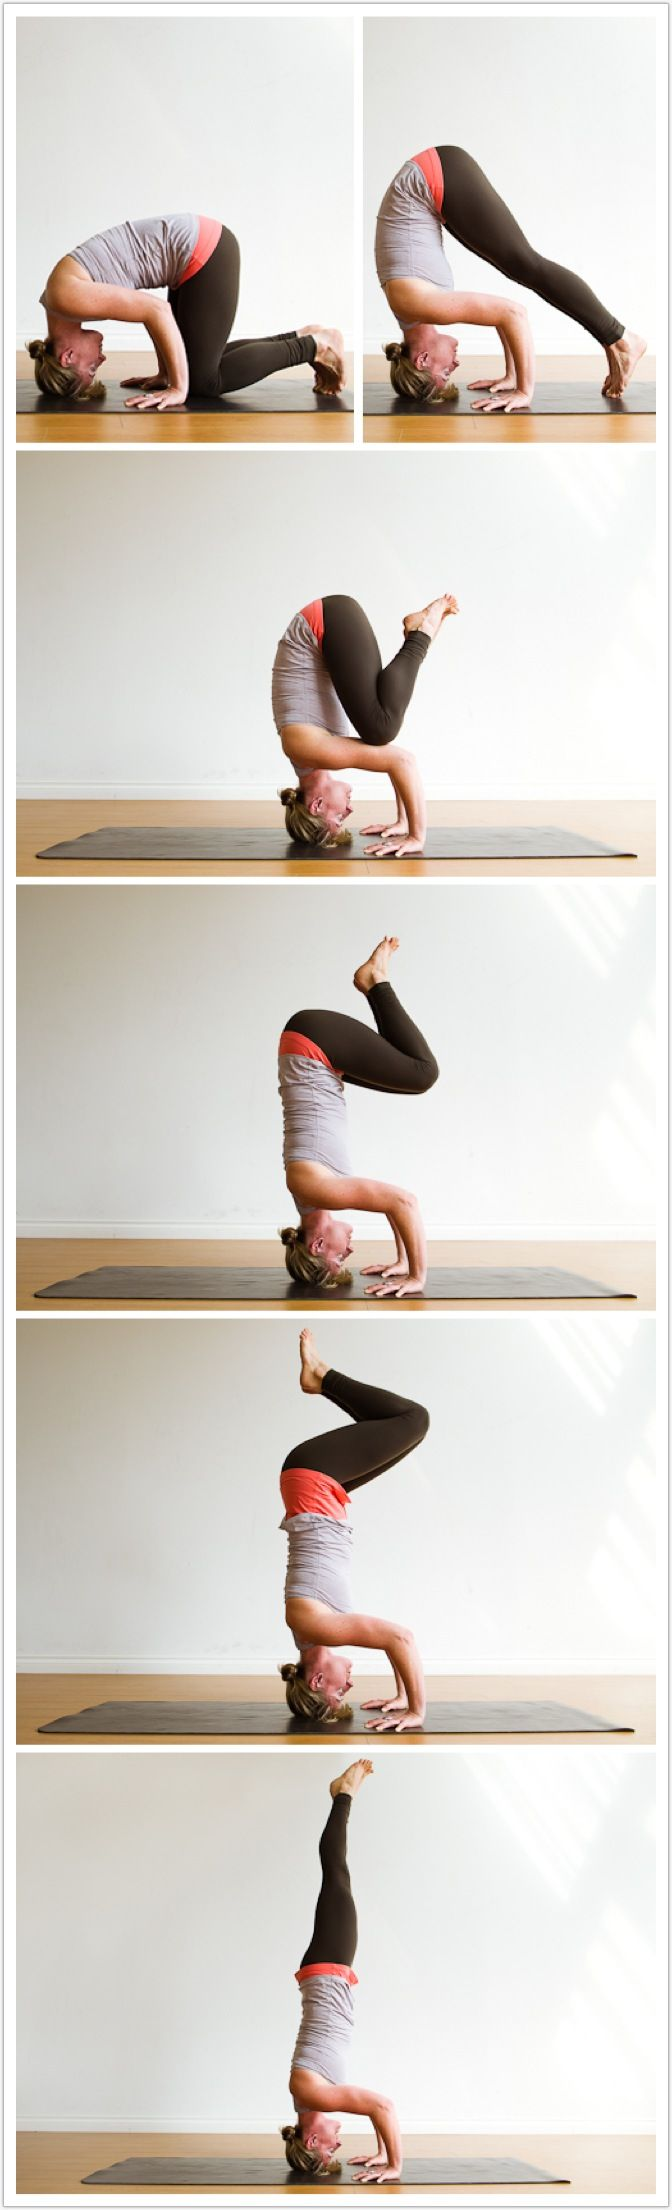 5 Steps to Headstand